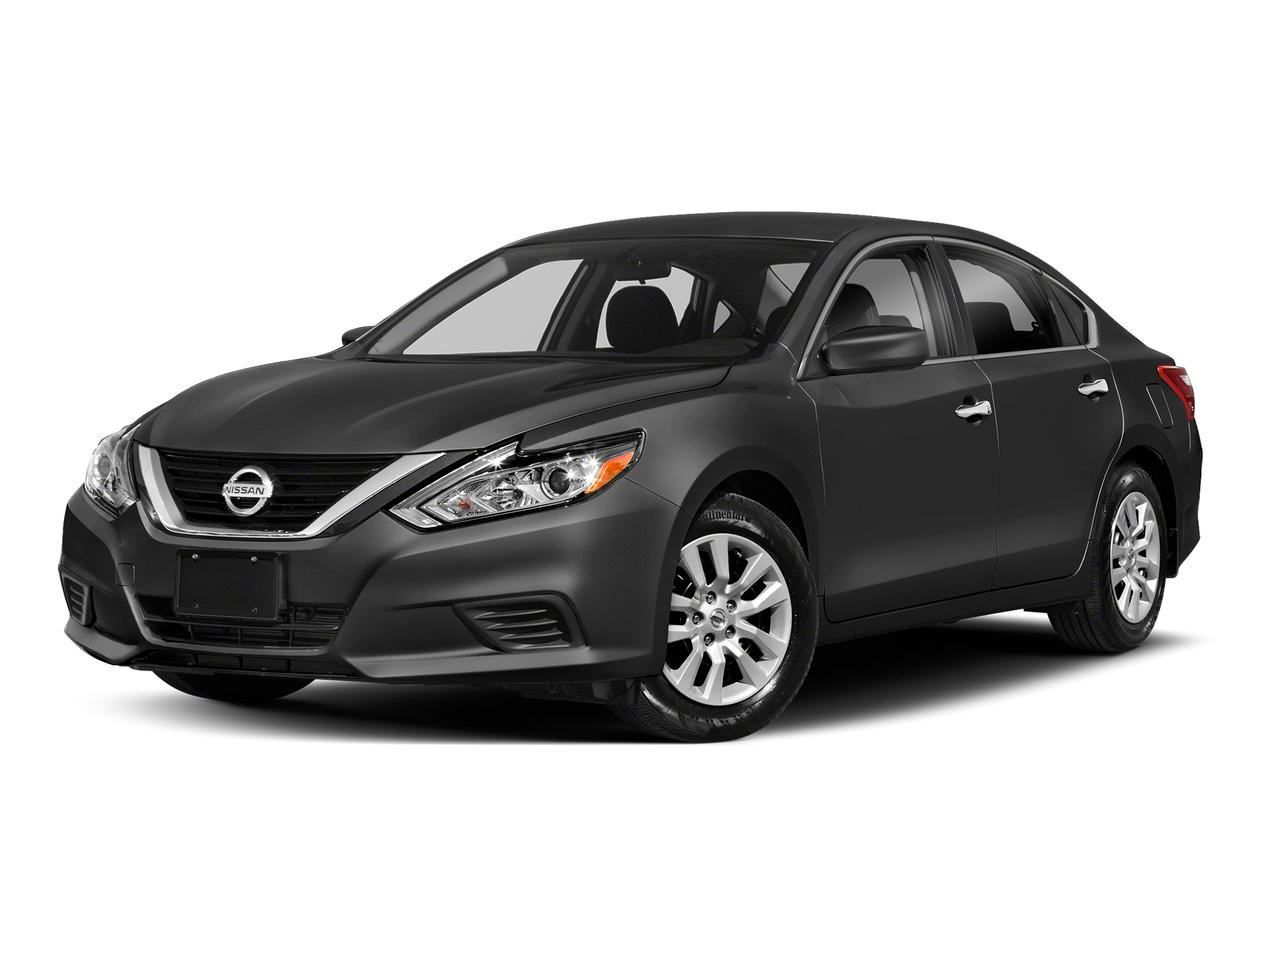 2018 Nissan Altima Vehicle Photo in Spokane, WA 99207